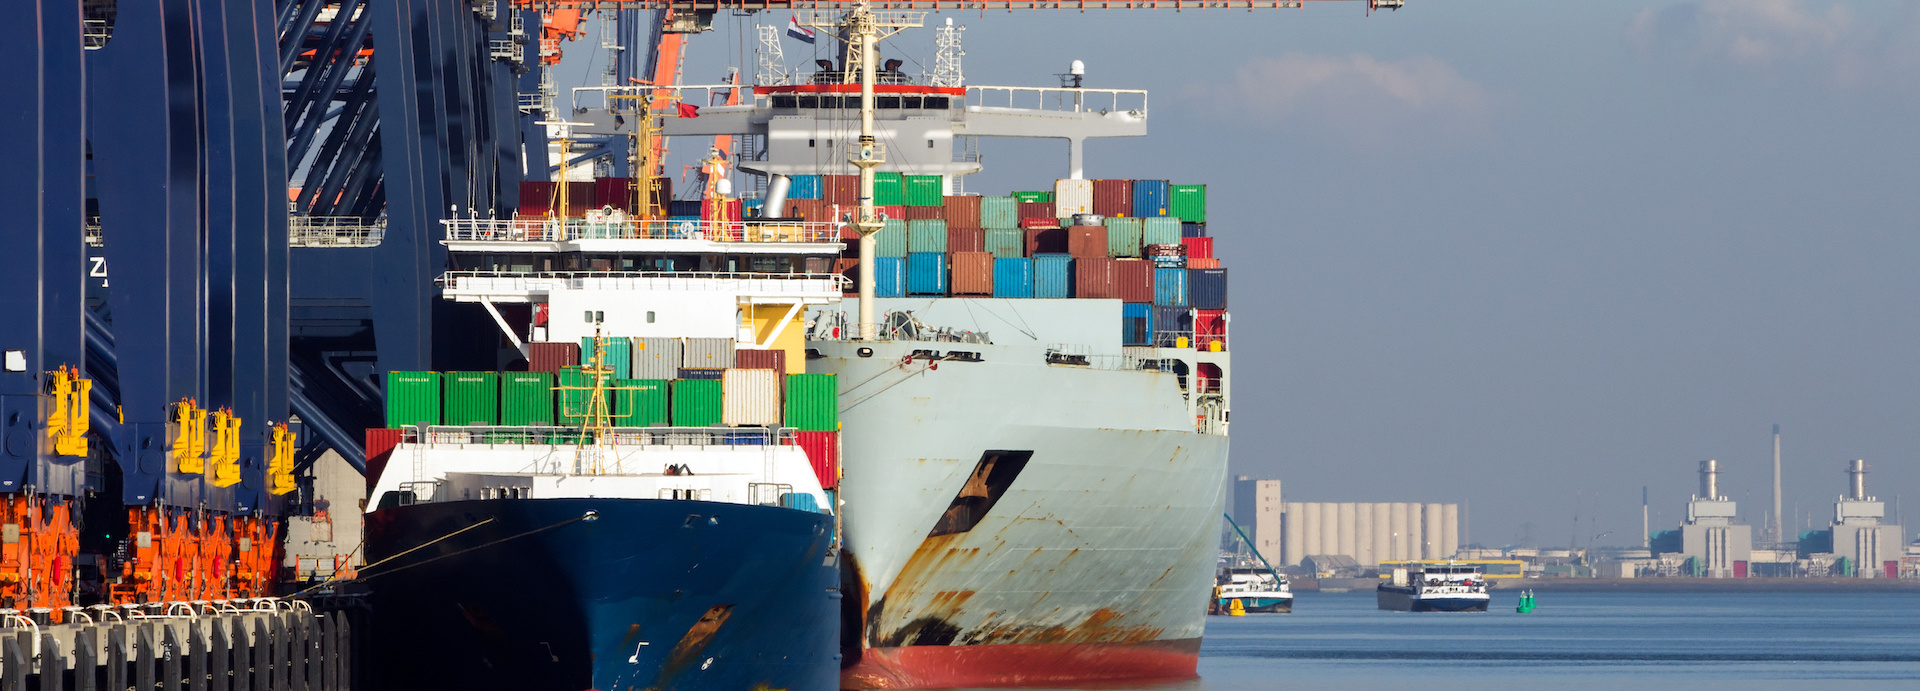 Cargo ships at the port of Rotterdam